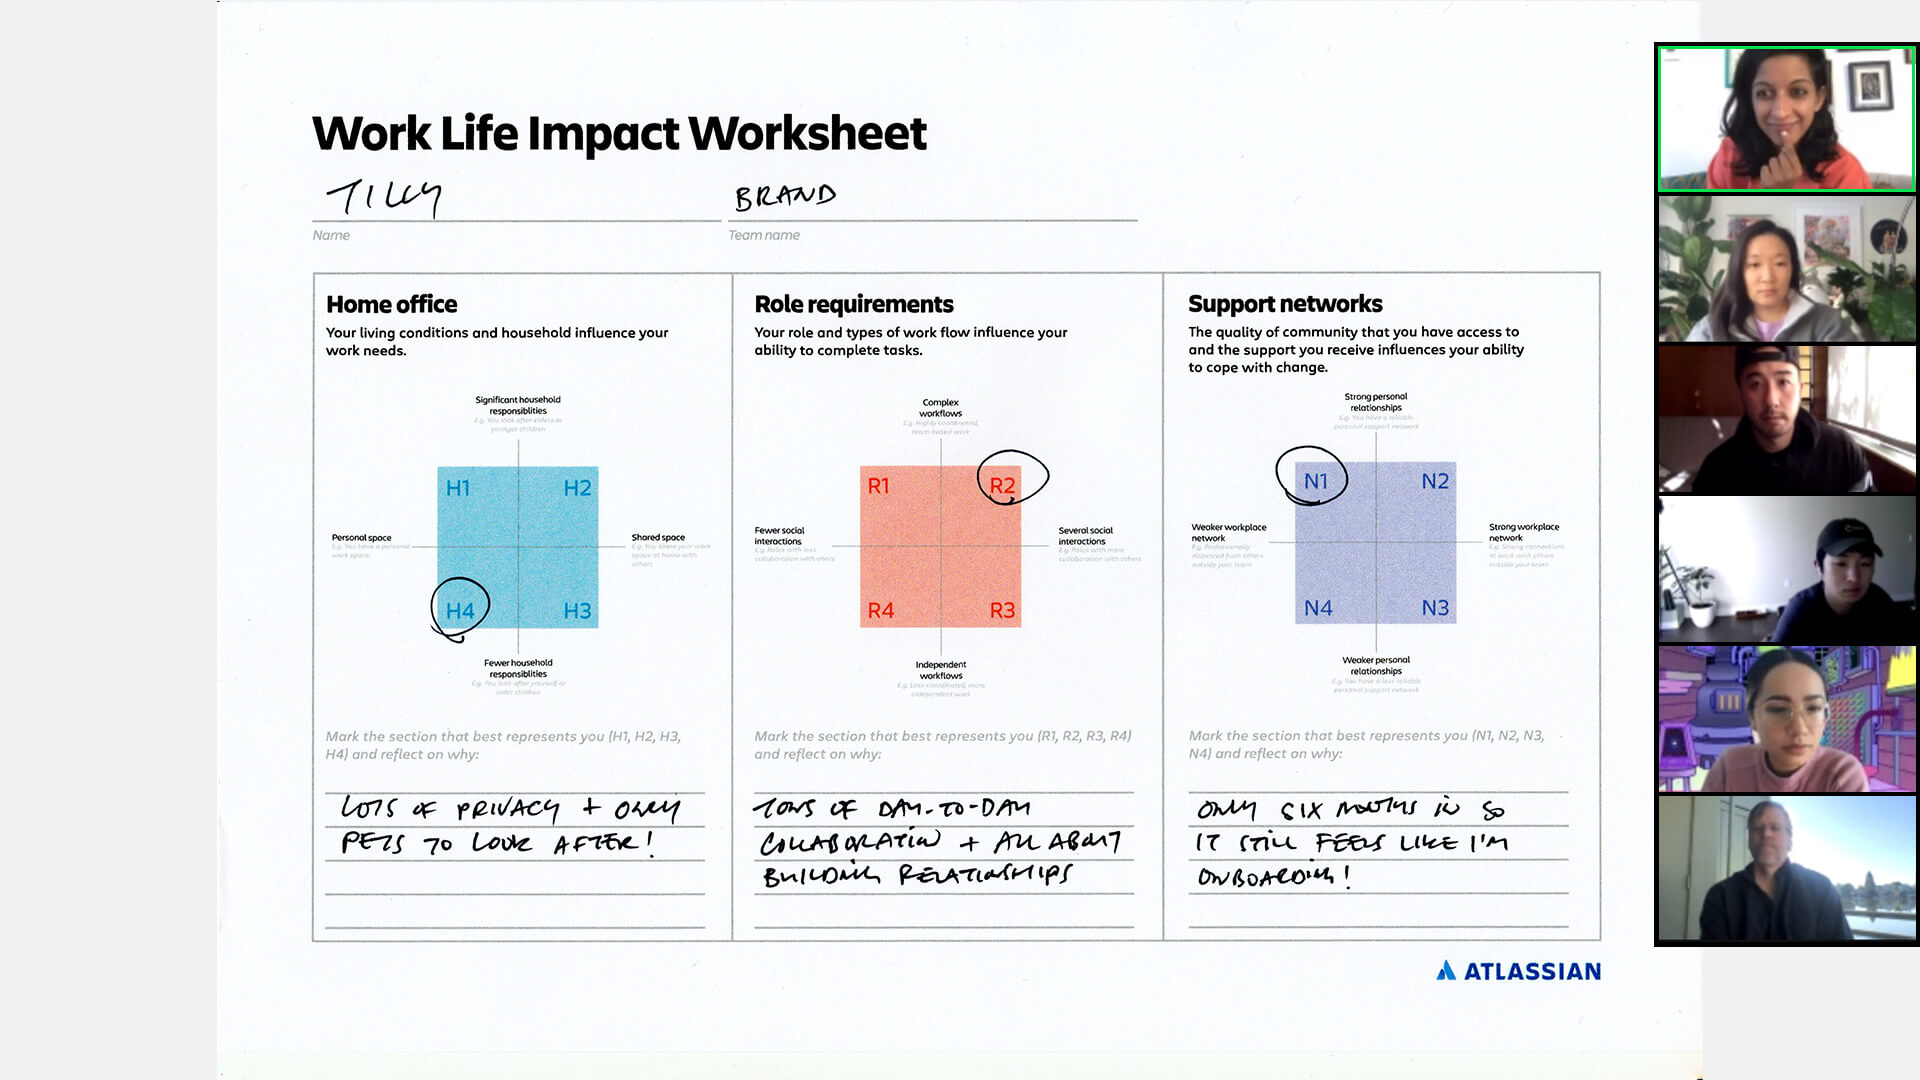 Team members discussing work life impact worksheet over video chat